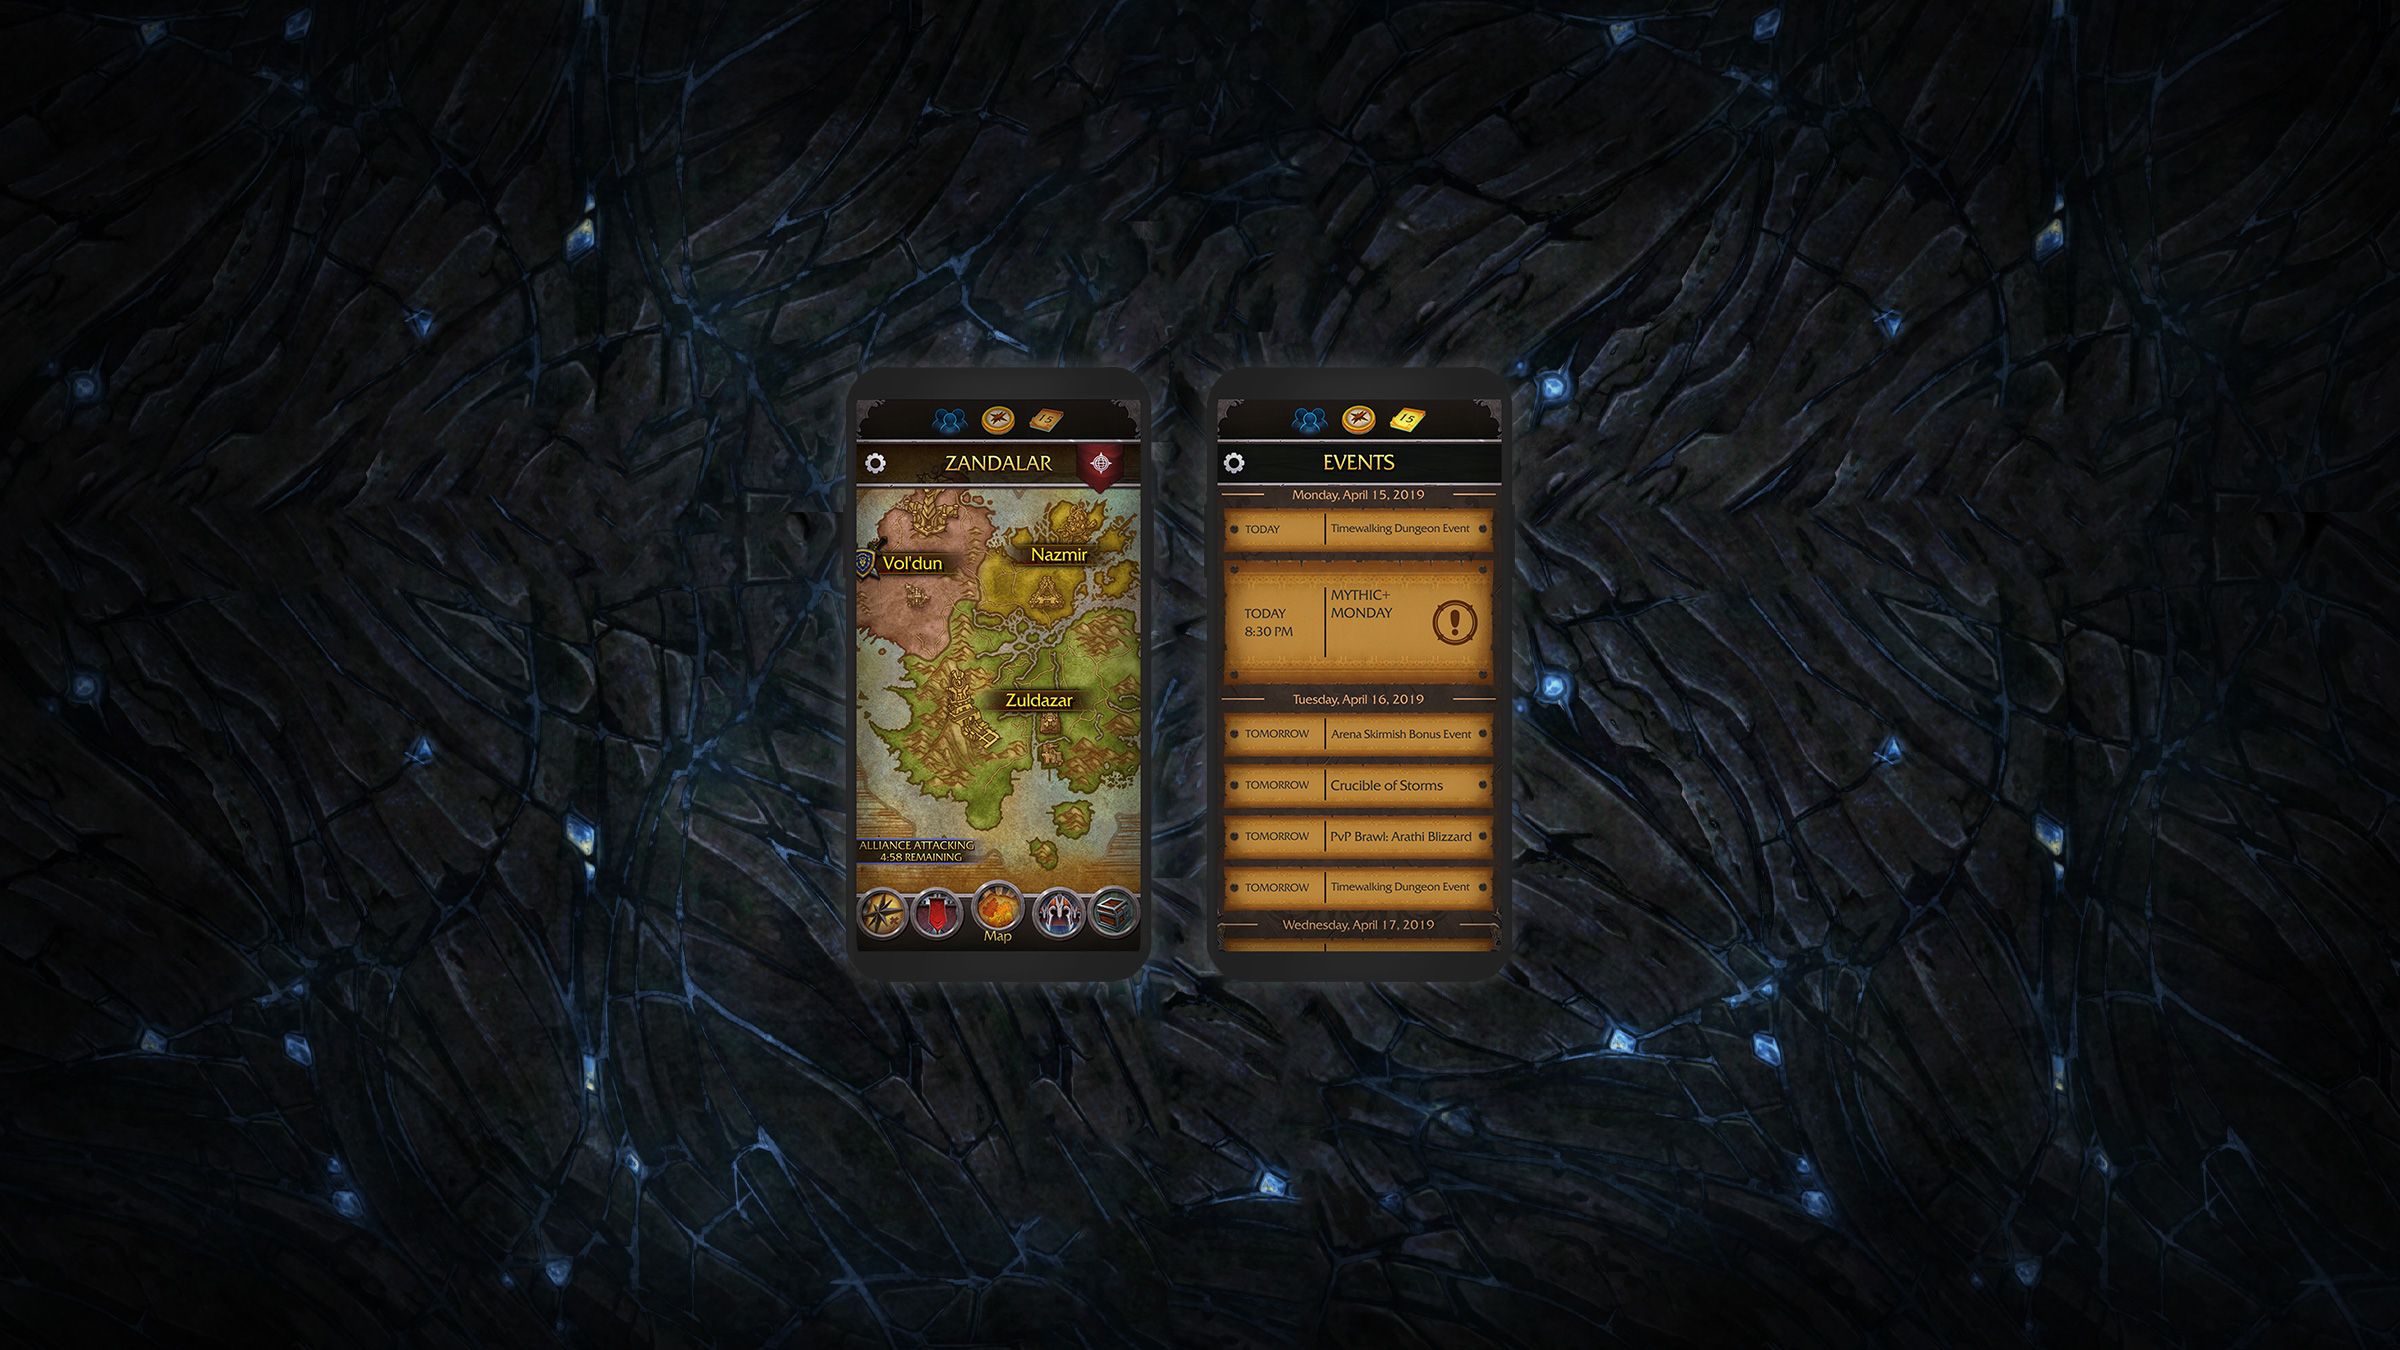 Gardez Azeroth à portée de main avec l'application WoW Companion